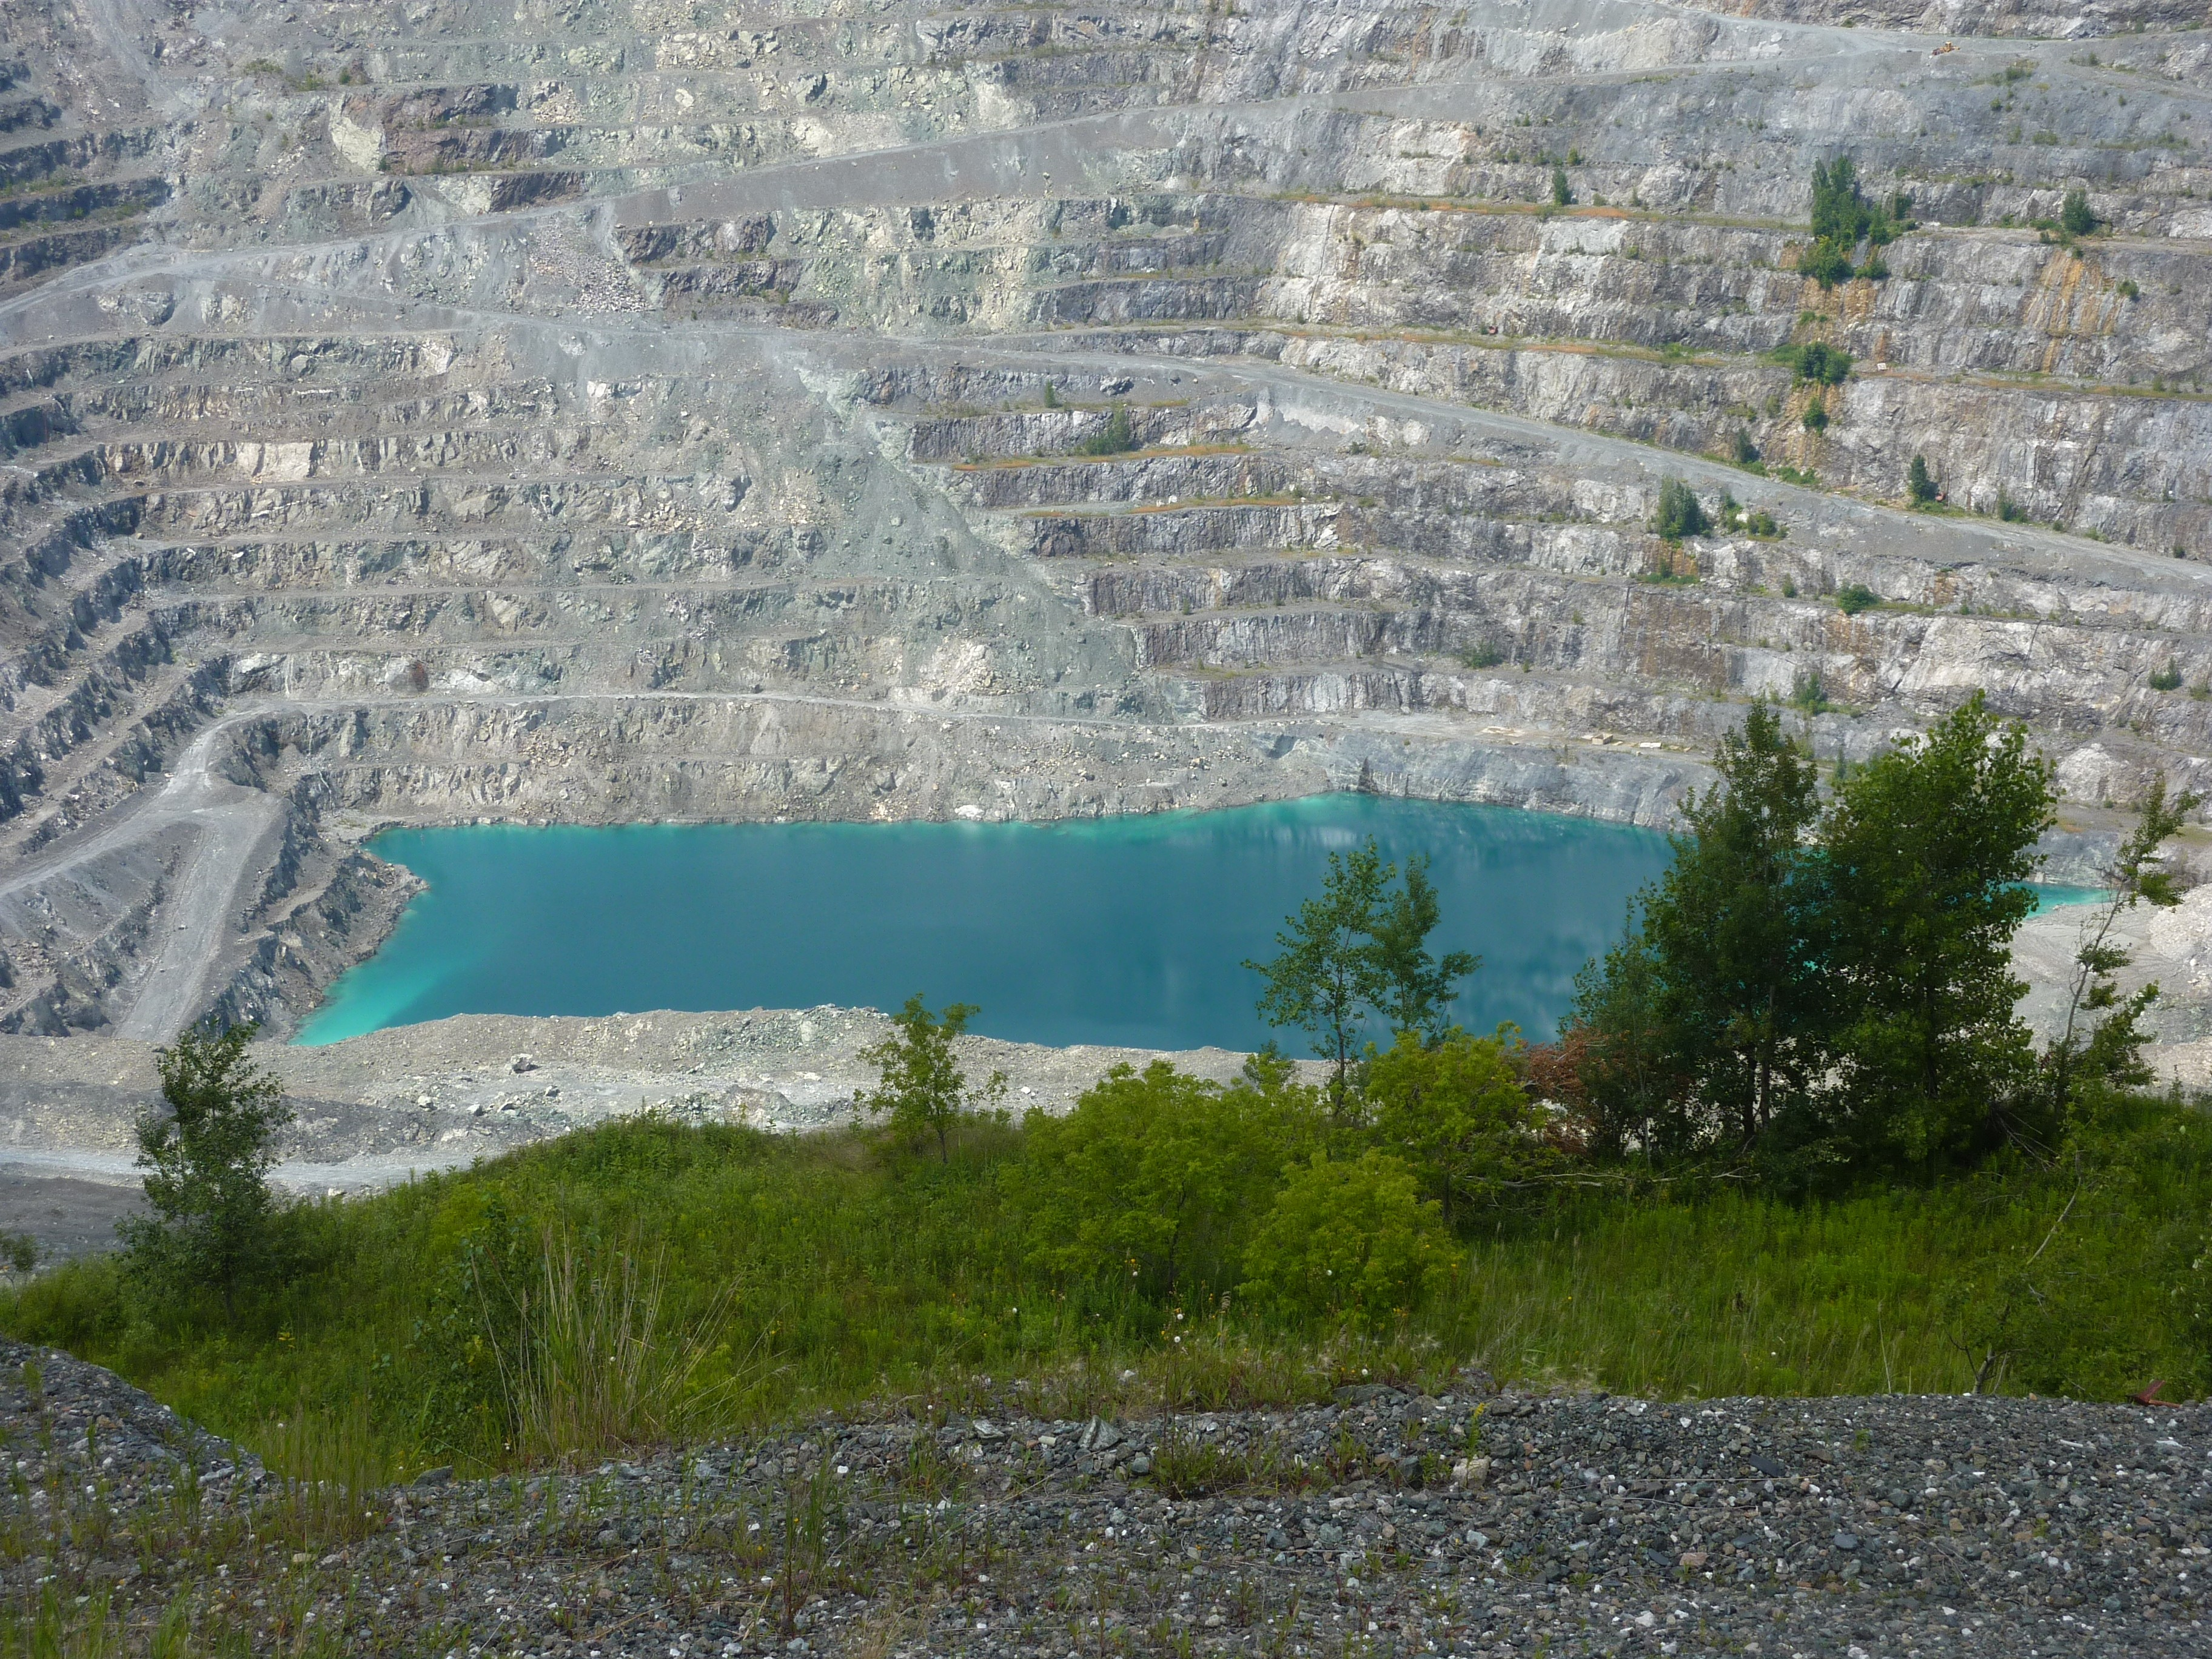 Asbestos Mine in Montreal, Canada